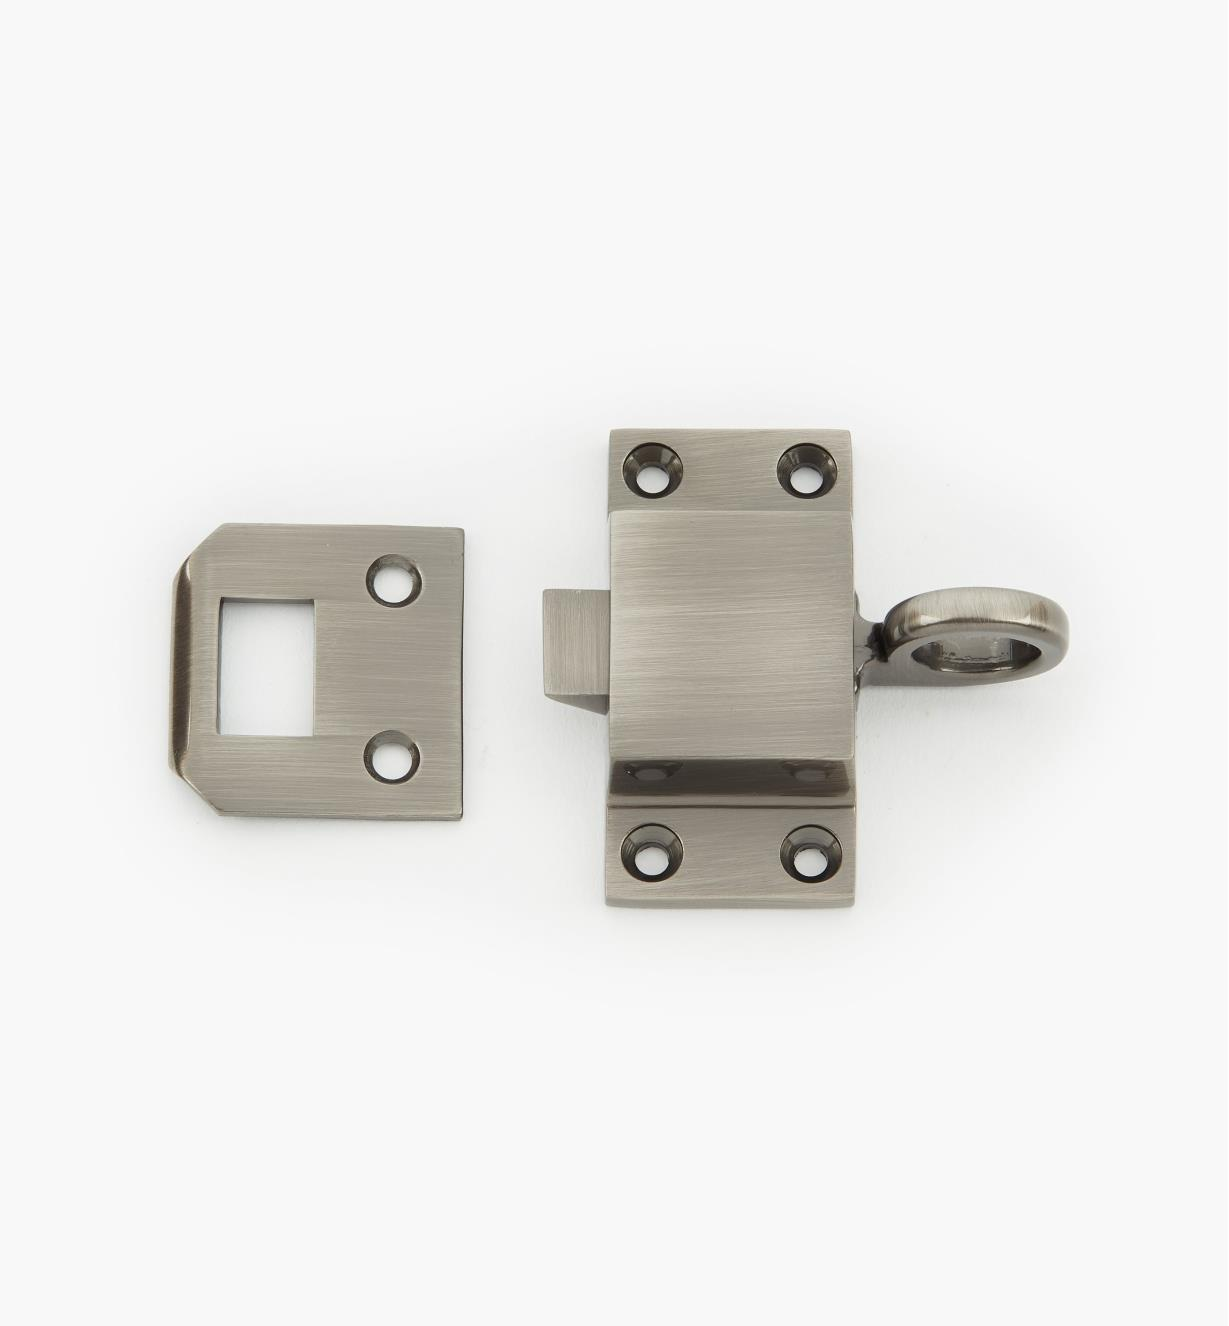 00L0504 - Antique Nickel Latch